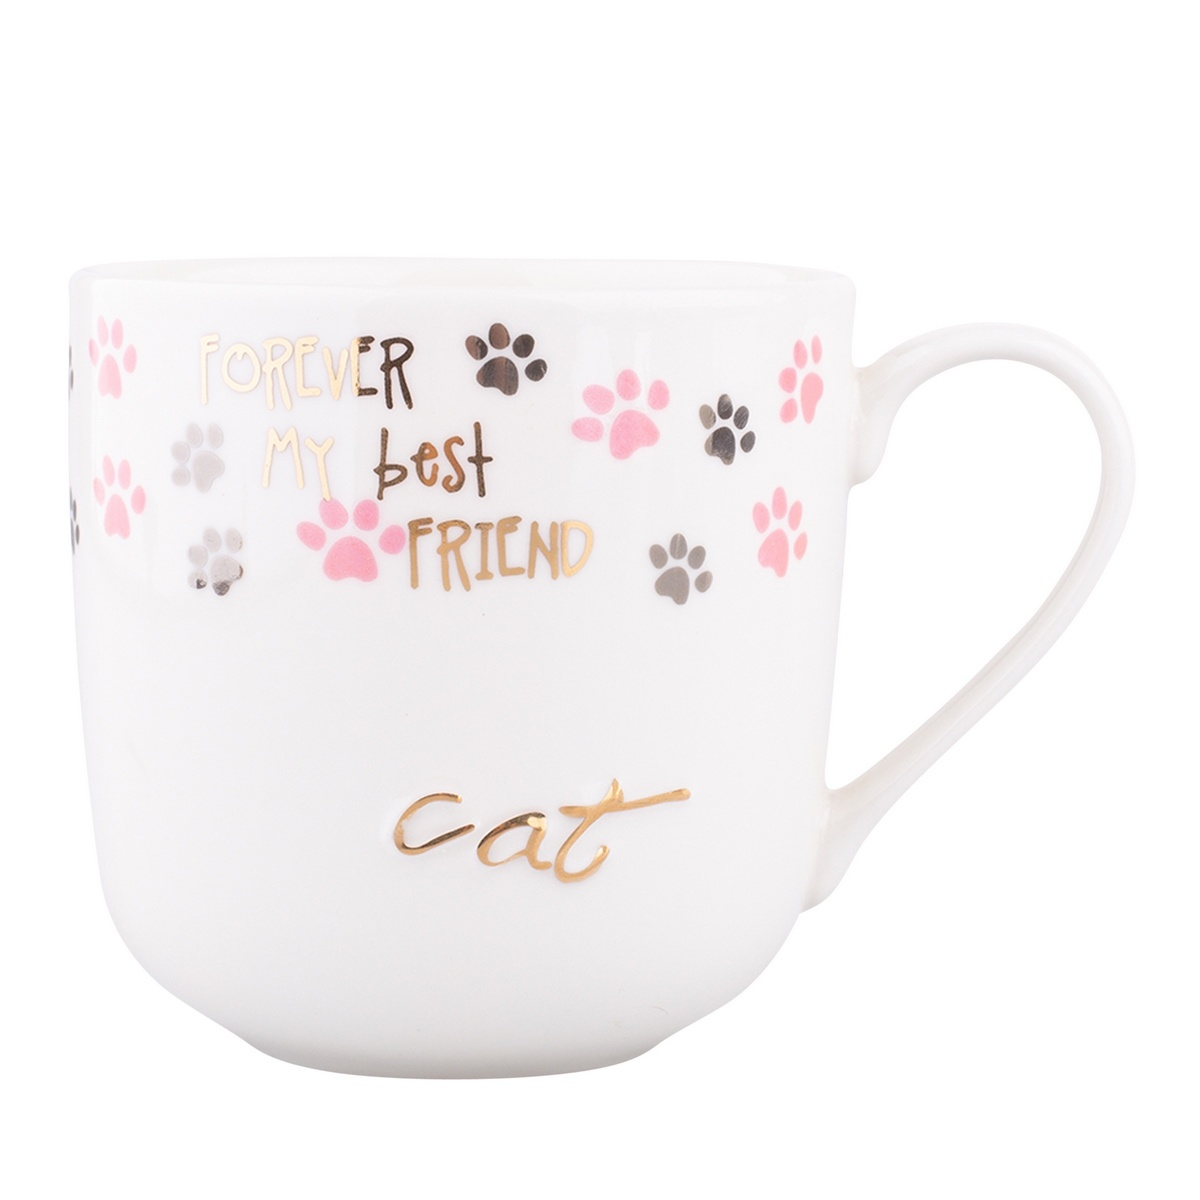 Altom Porcelánový hrnek Cat, 400 ml